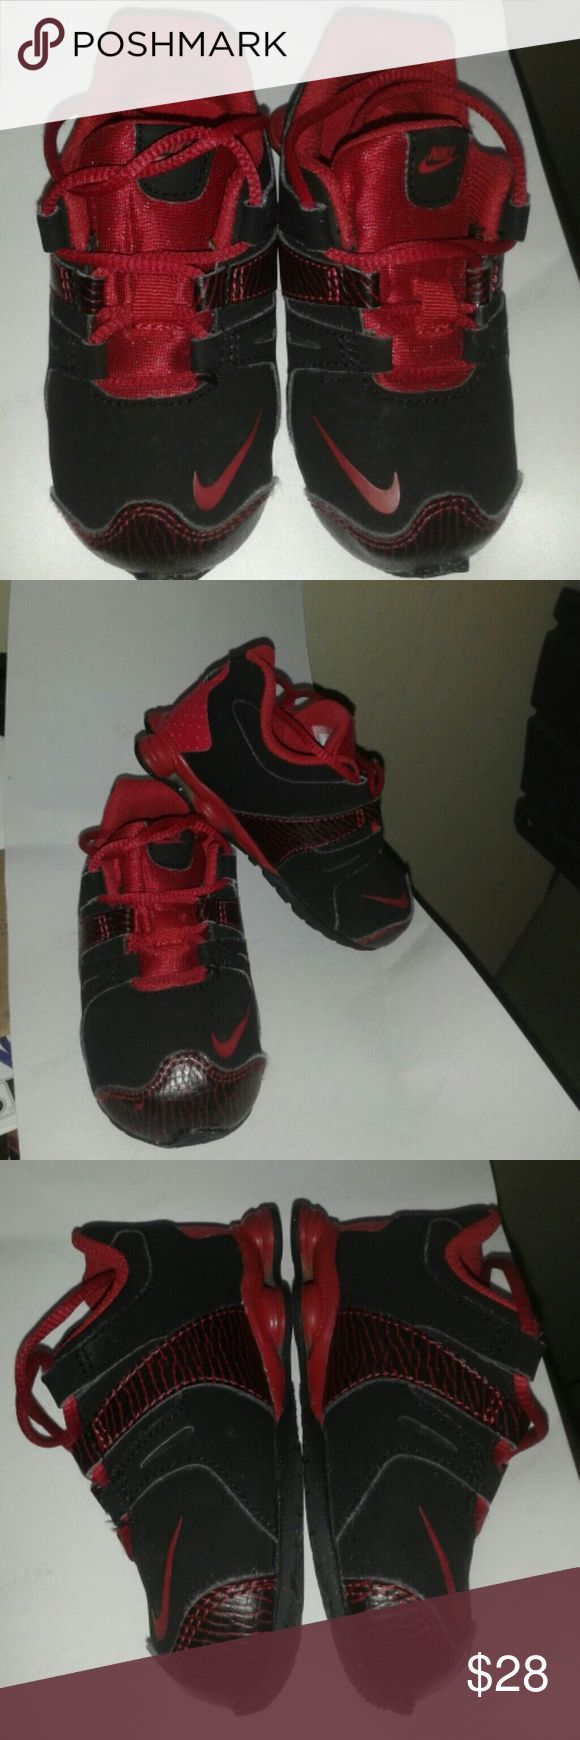 Toddler Nike Shocks Great condition red and black shocks 7C. Nike Shoes Sneakers